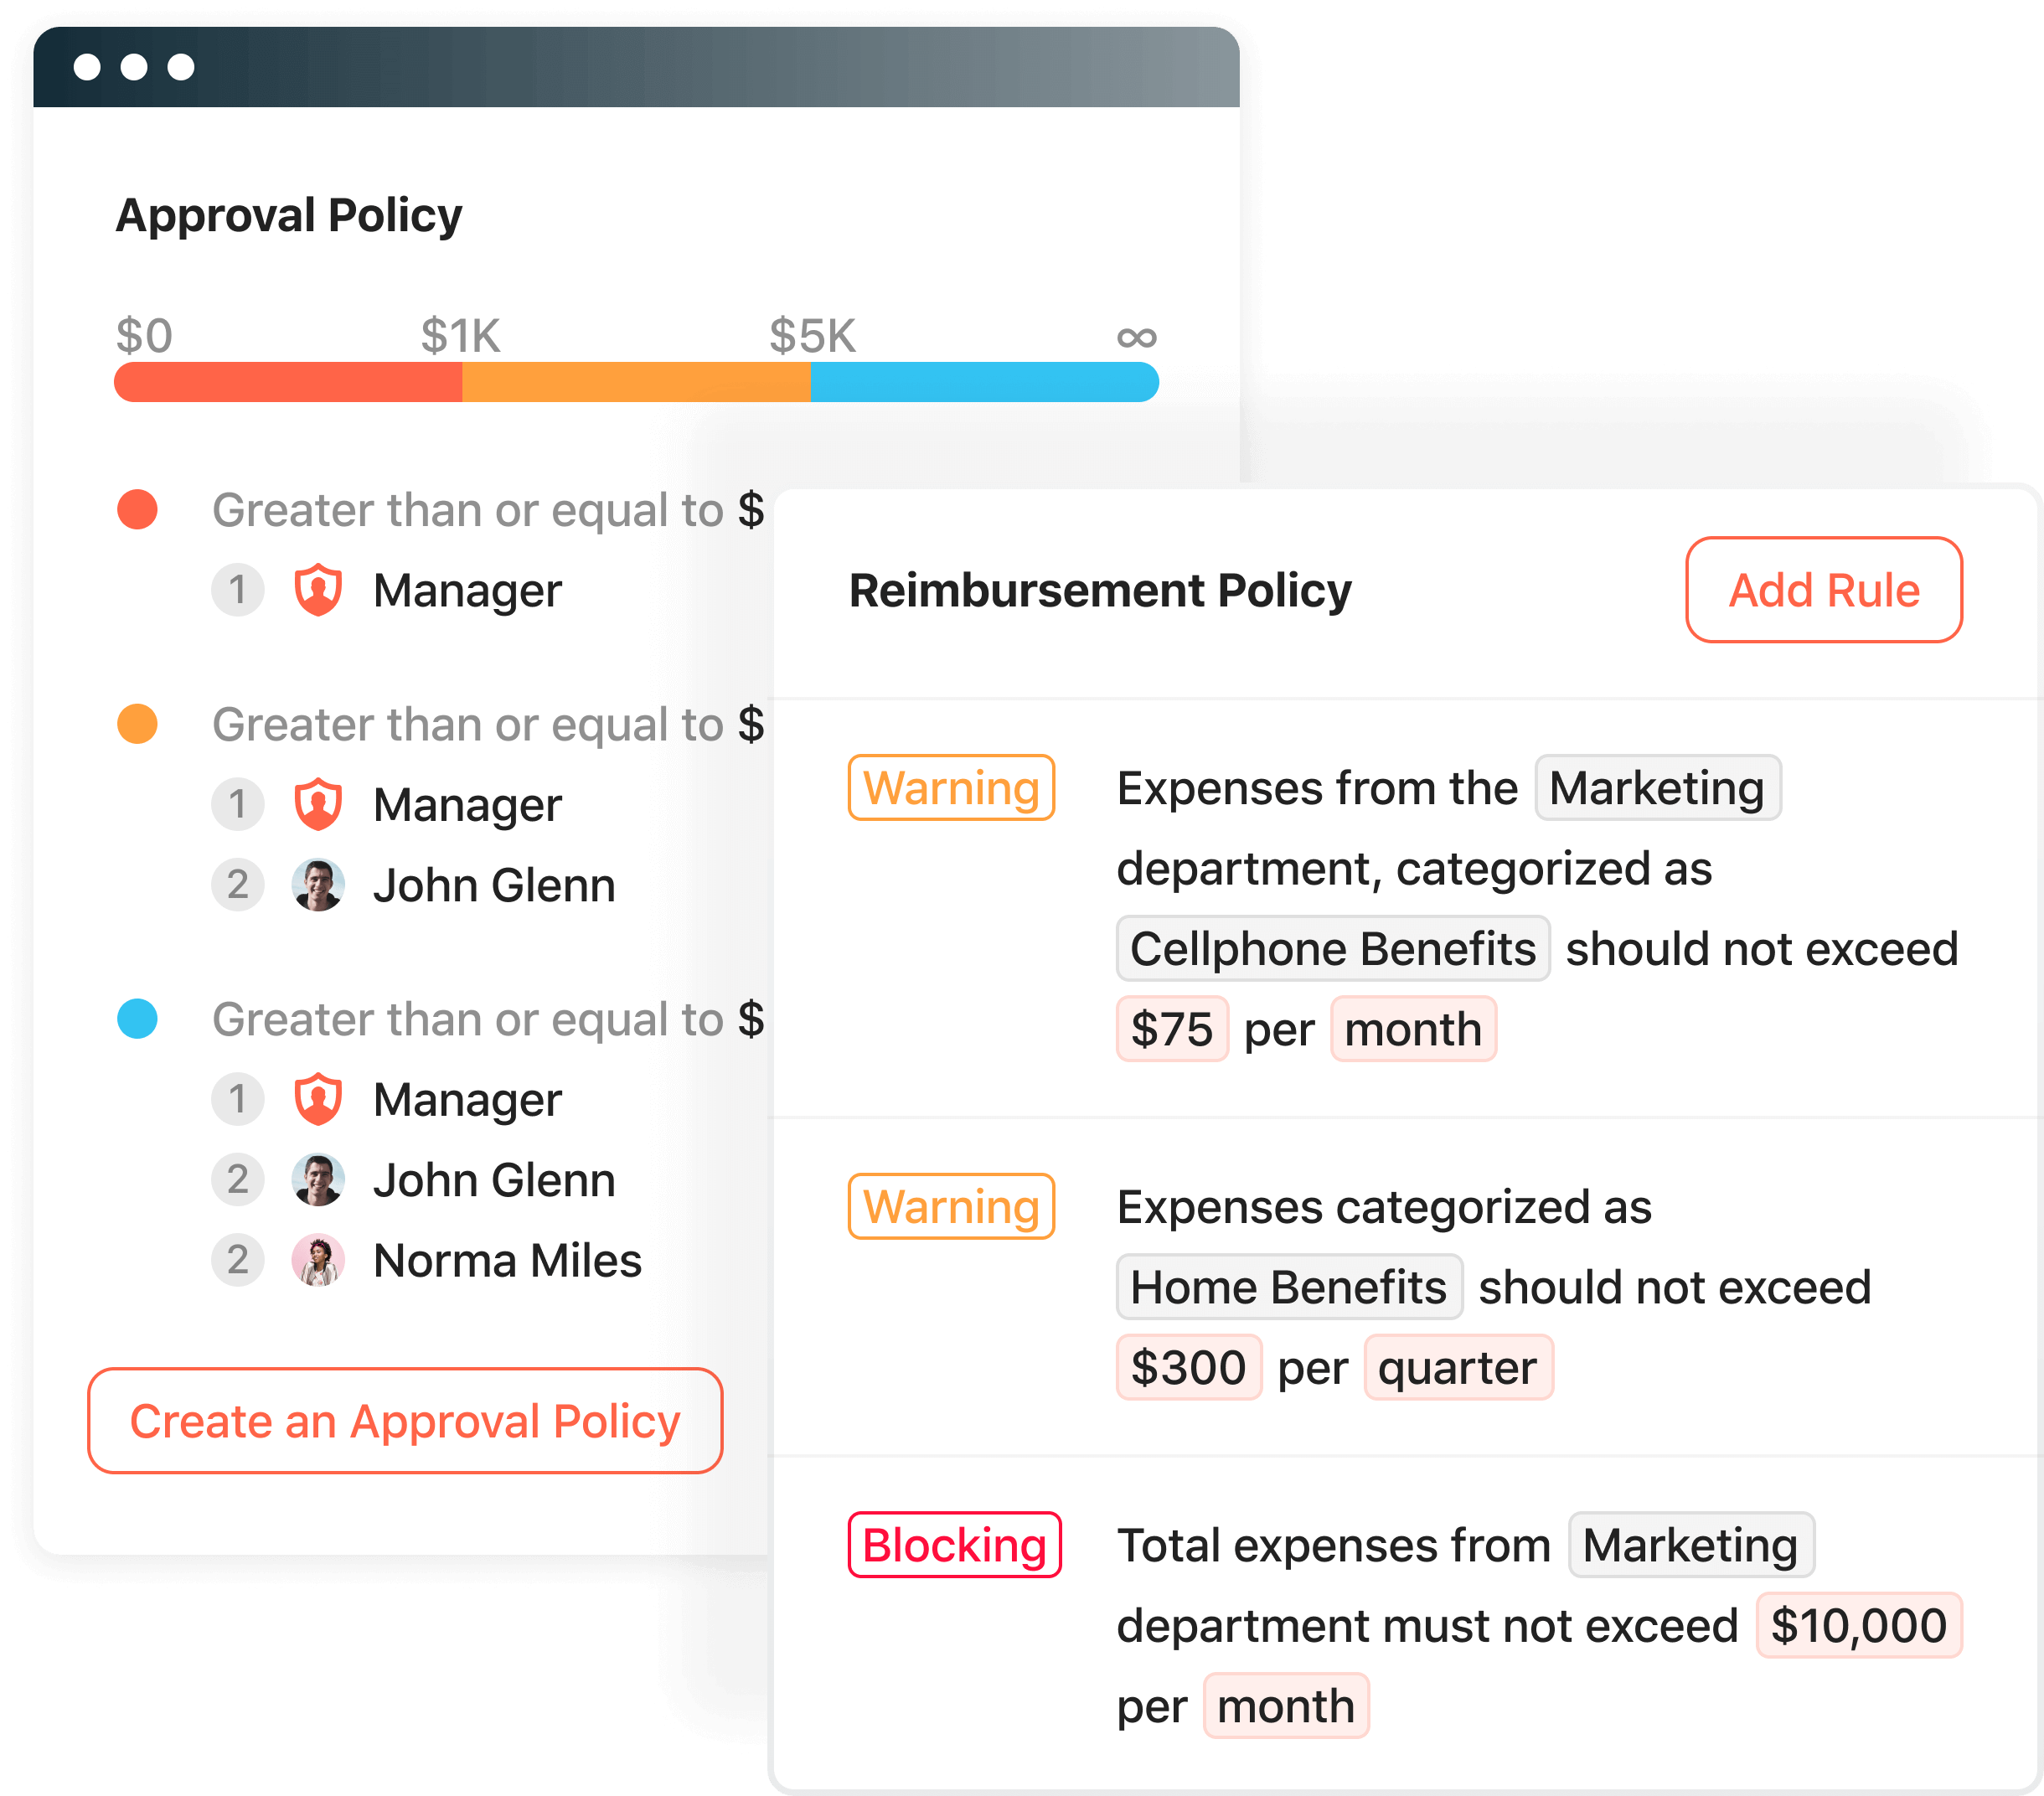 Product screenshot displaying the policies and approvals that can be set up.